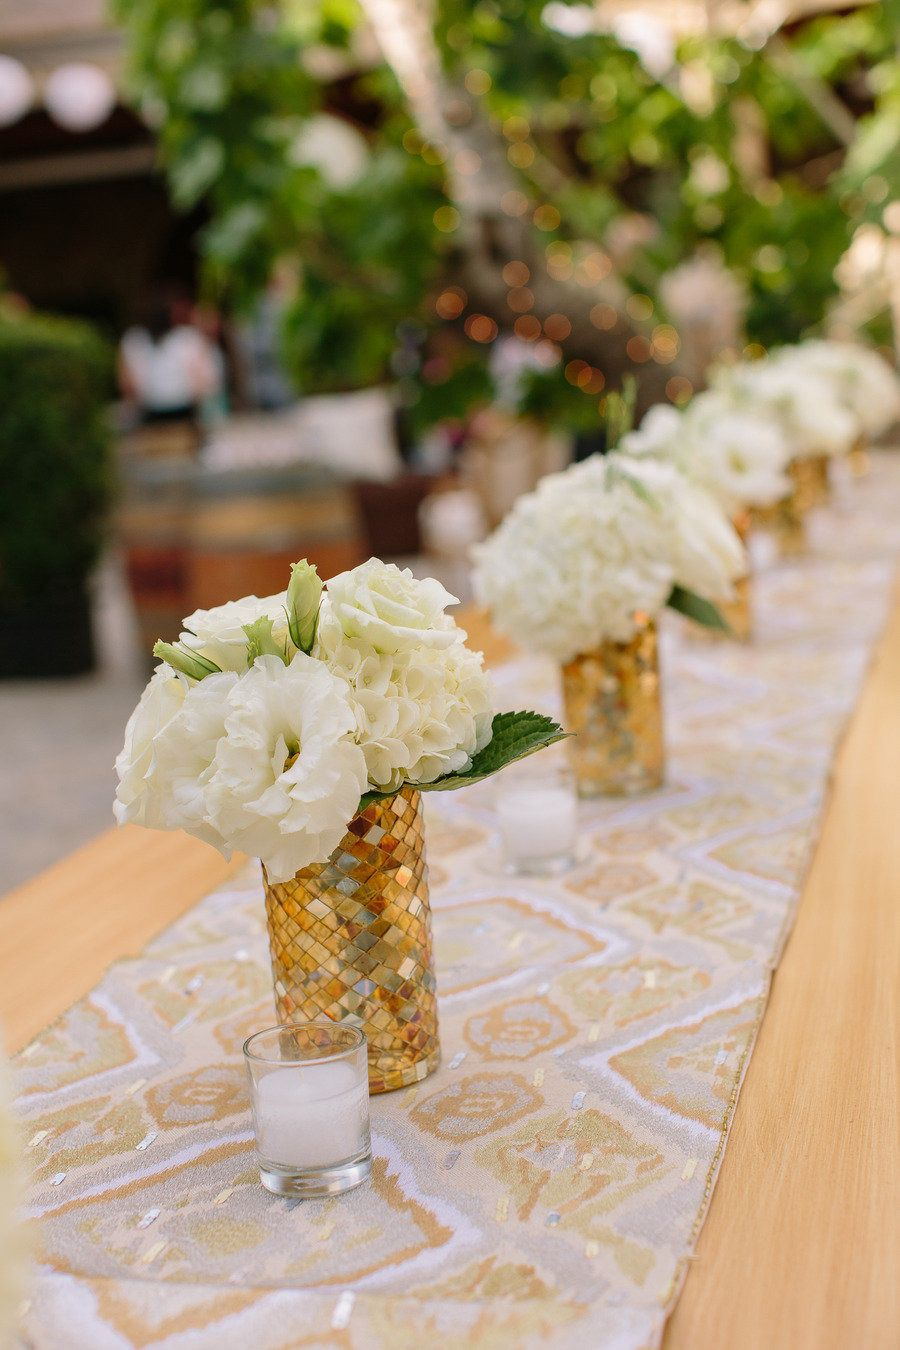 Table Runner | Wedding Centerpieces | Photography: Briana Marie Photography | See the Wedding! http://stylemepretty.com/2013/07/05/sonoma-wedding-from-briana-marie-photography/